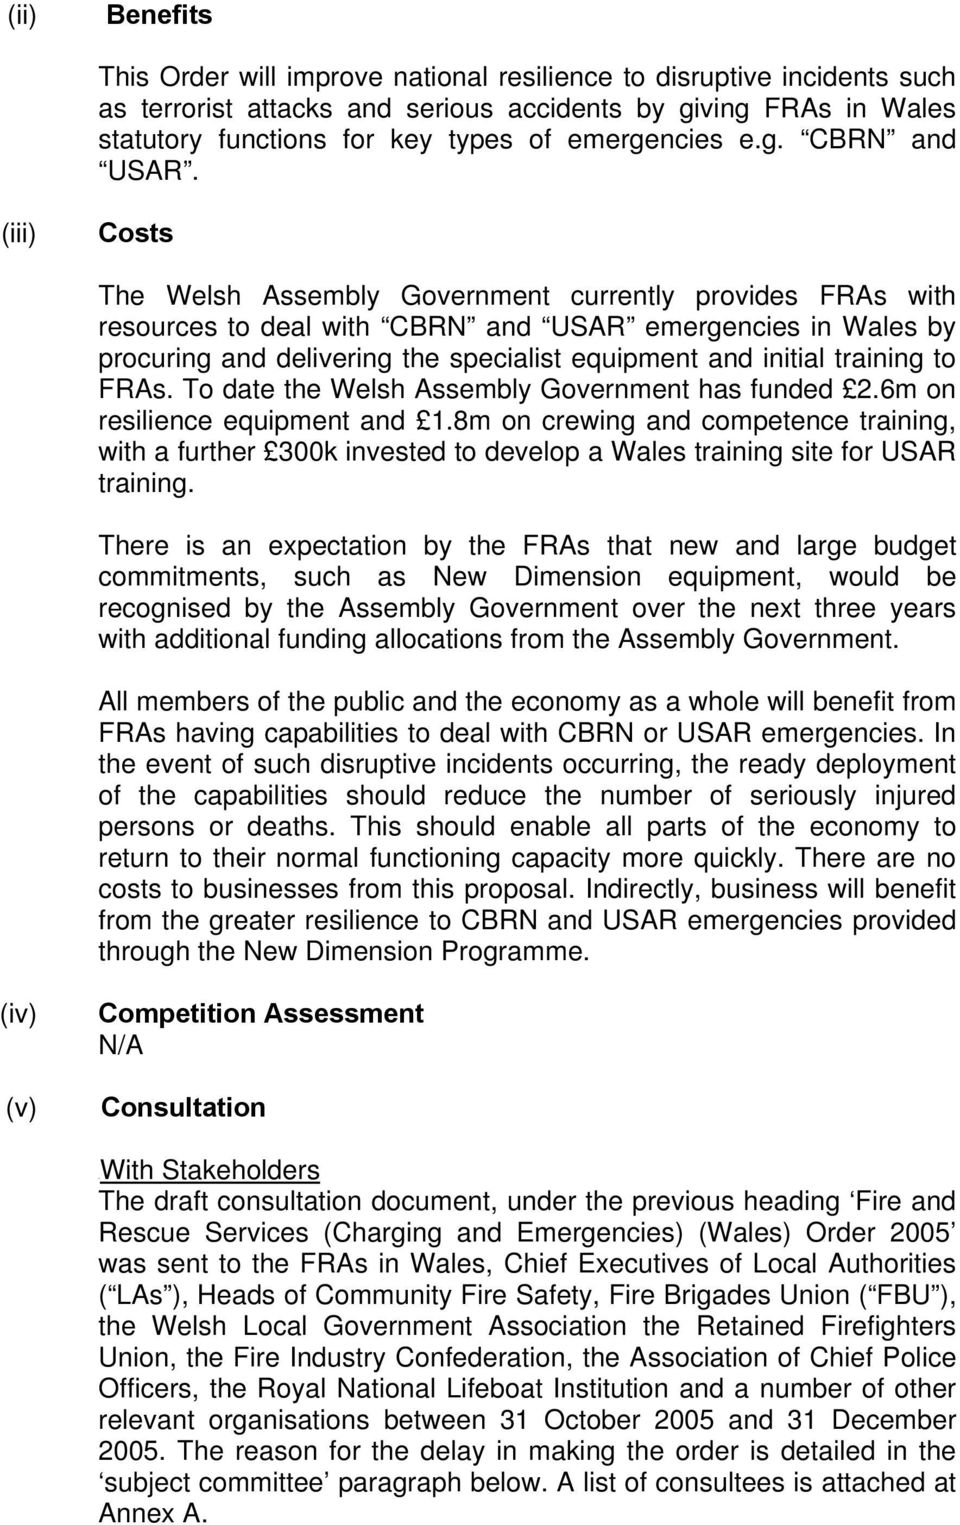 (iii) Costs The Welsh Assembly Government currently provides FRAs with resources to deal with CBRN and USAR emergencies in Wales by procuring and delivering the specialist equipment and initial